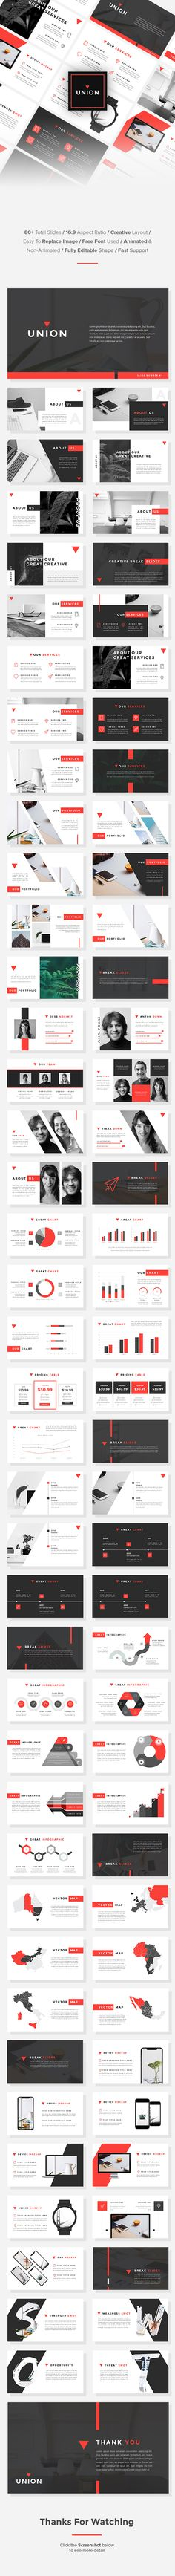 royal google slides pitch deck template download here http